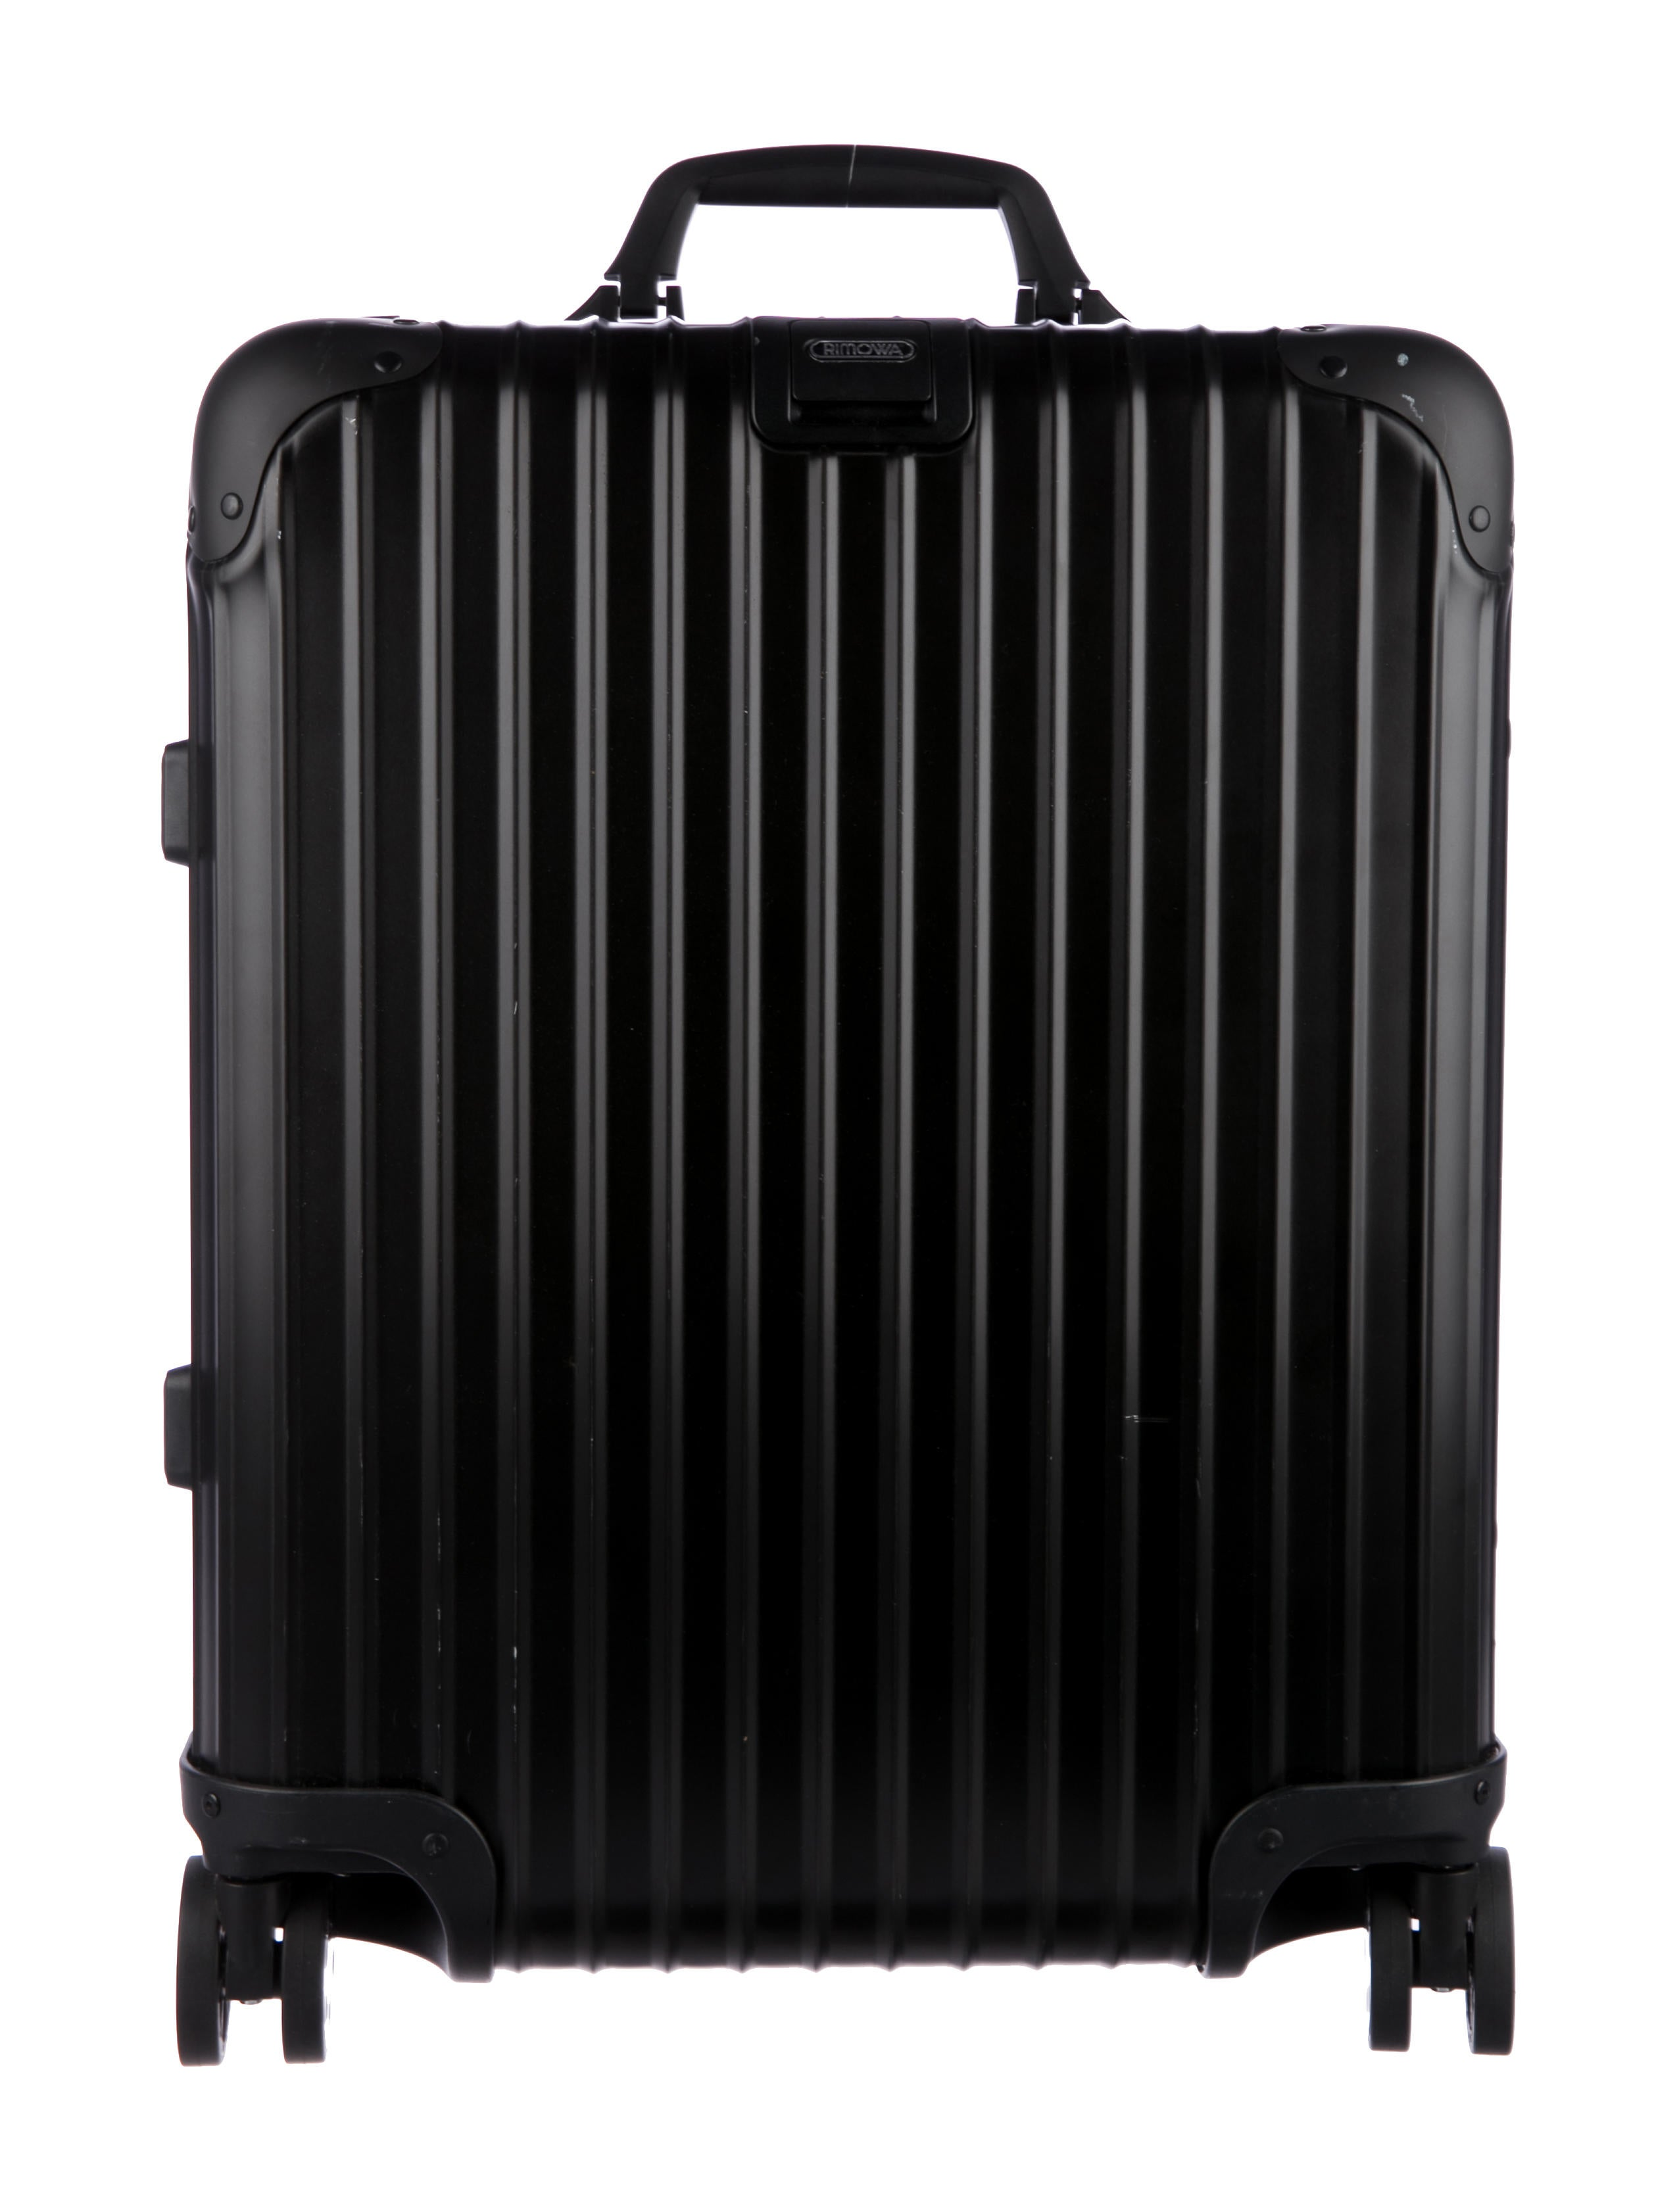 rimowa topas stealth hardshell suitcase luggage rwa20129 the realreal. Black Bedroom Furniture Sets. Home Design Ideas